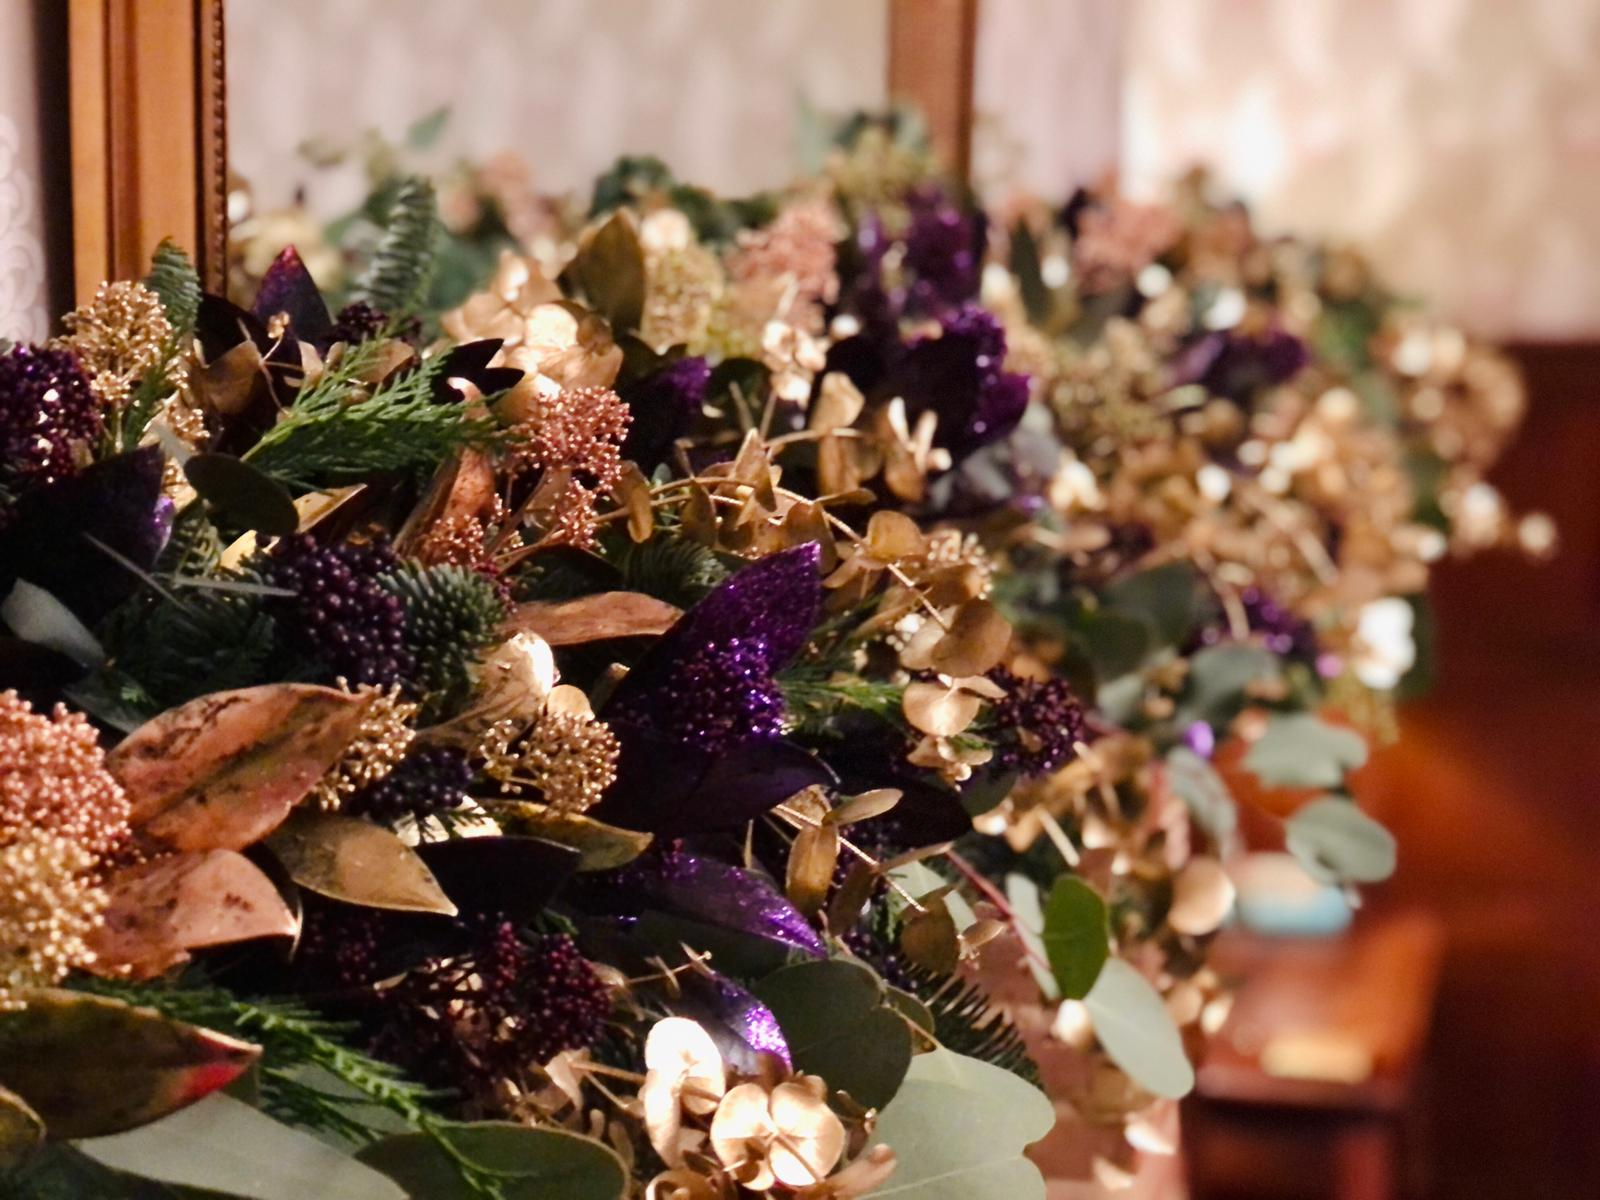 Close-up of fireplace Christmas garland with gold and purple sprayed leaves and decorative extras